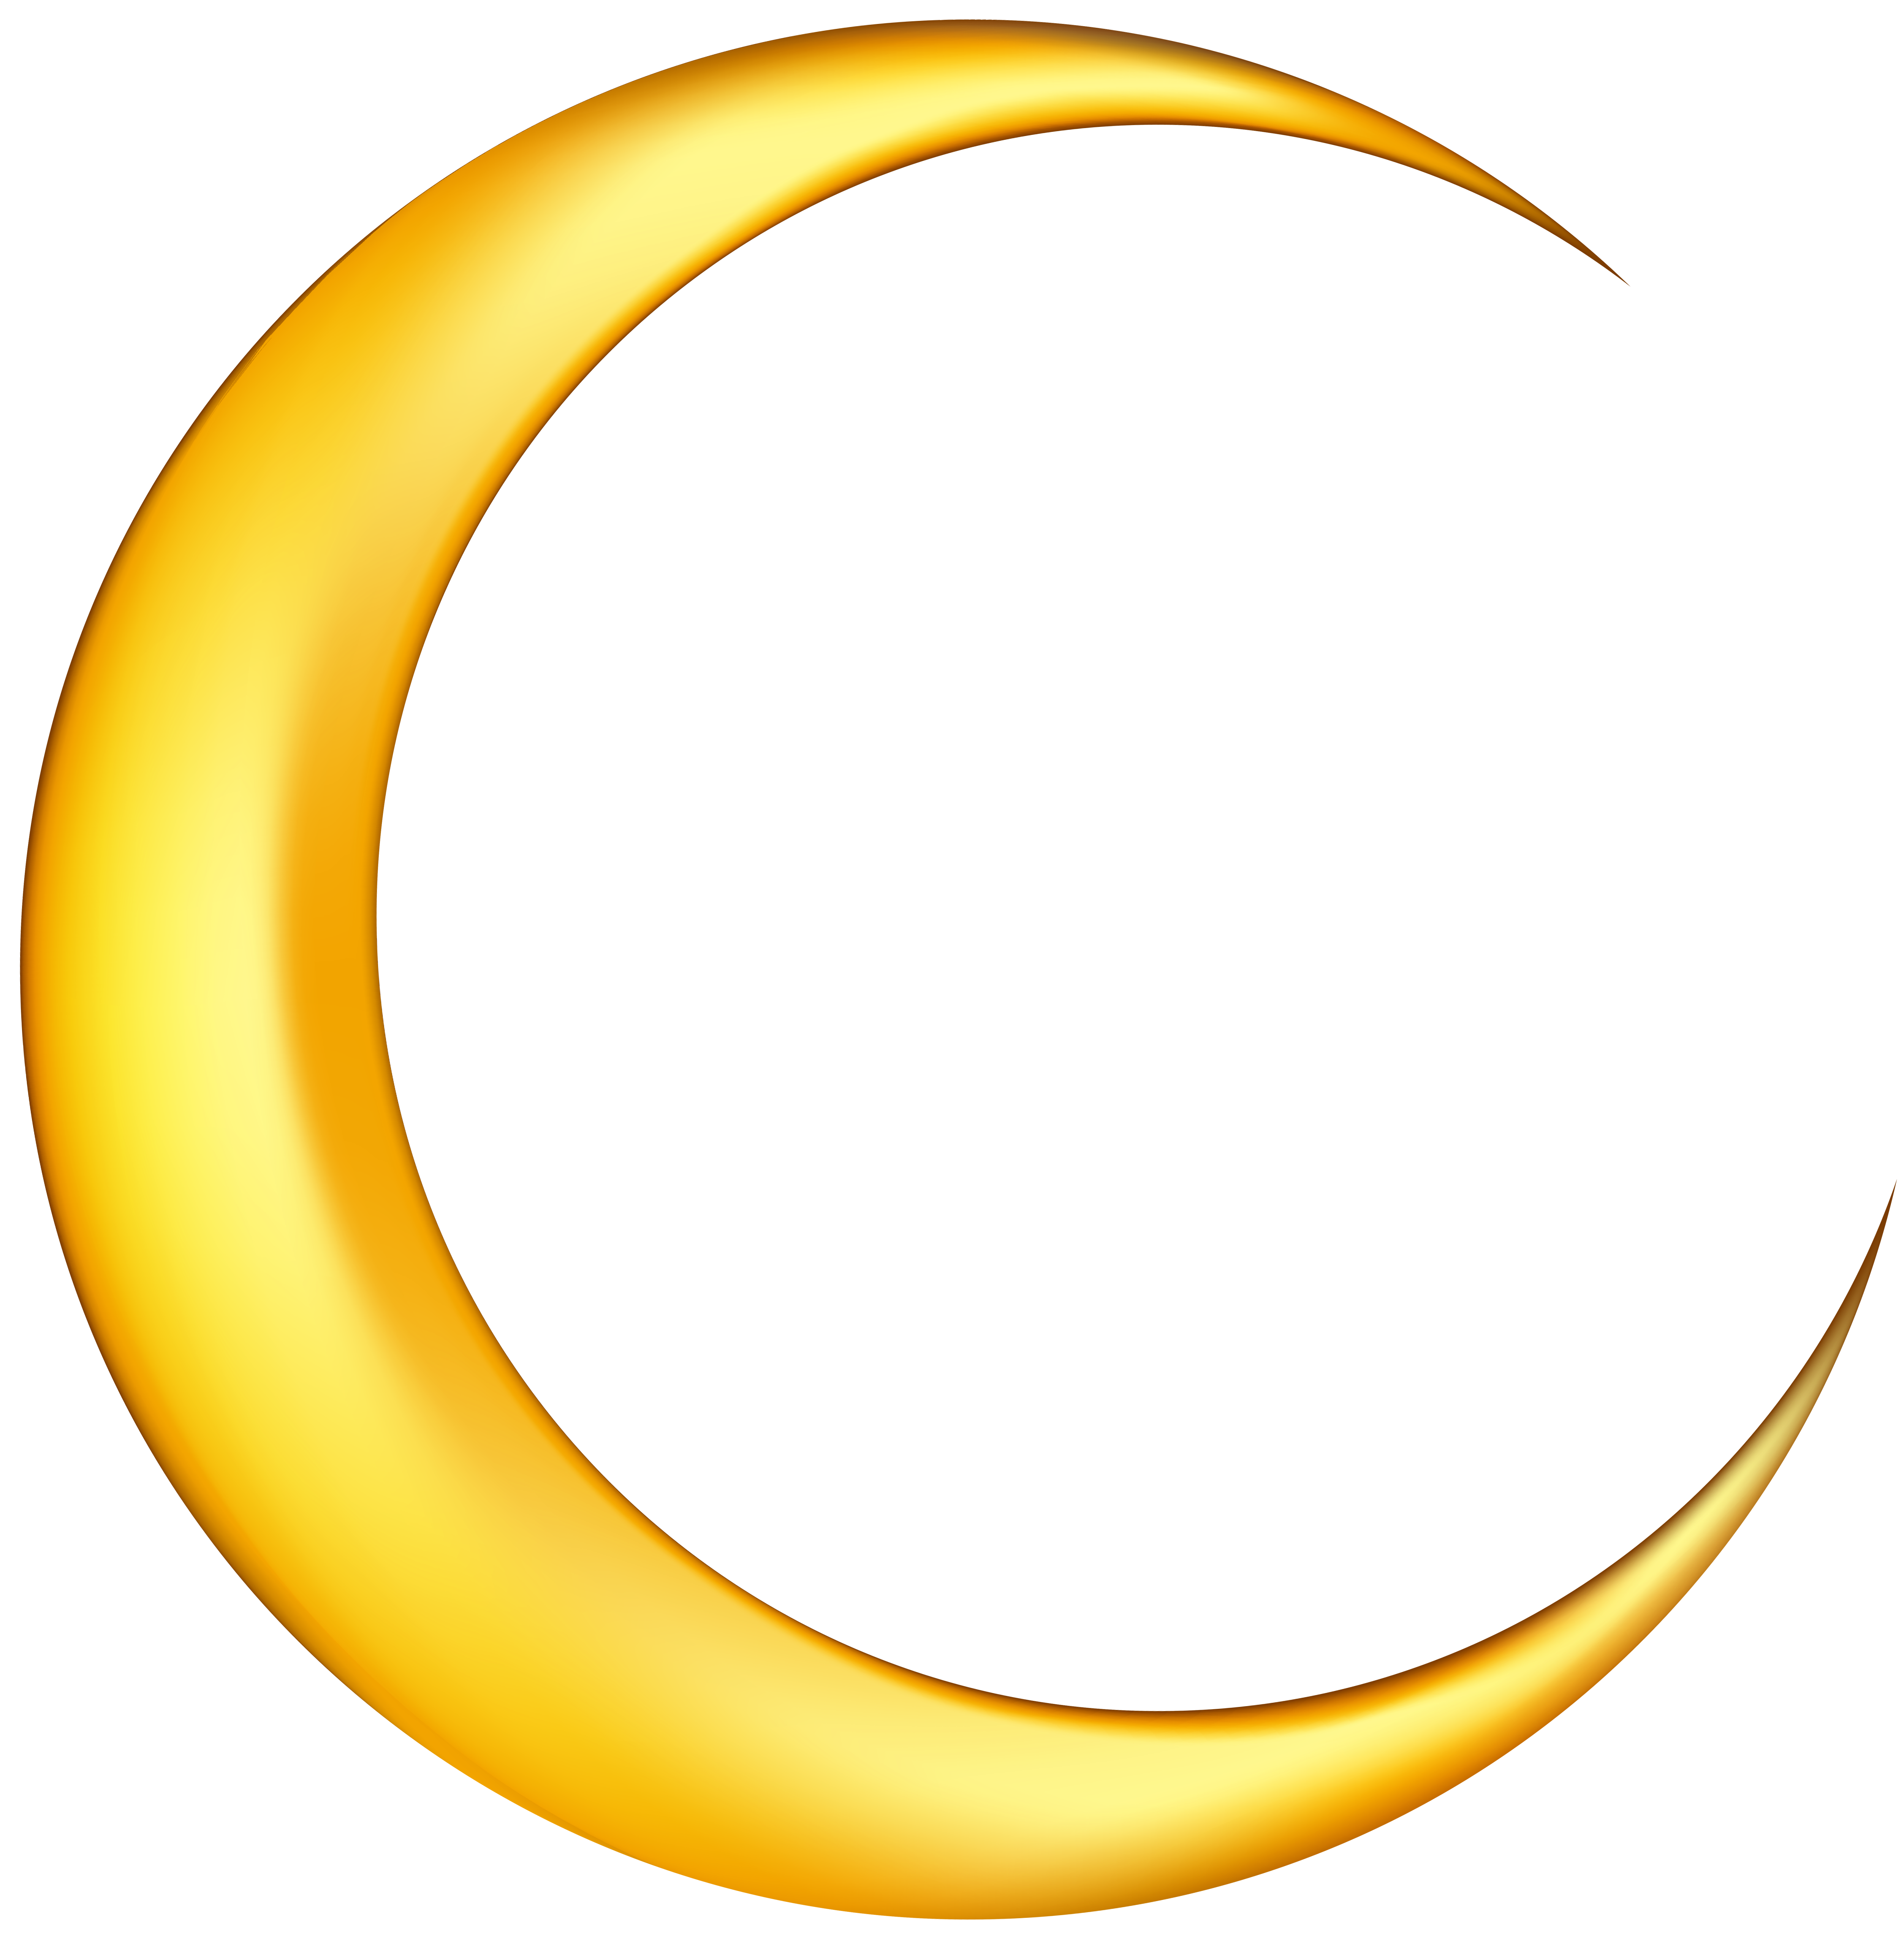 how to draw a crescent moon and star